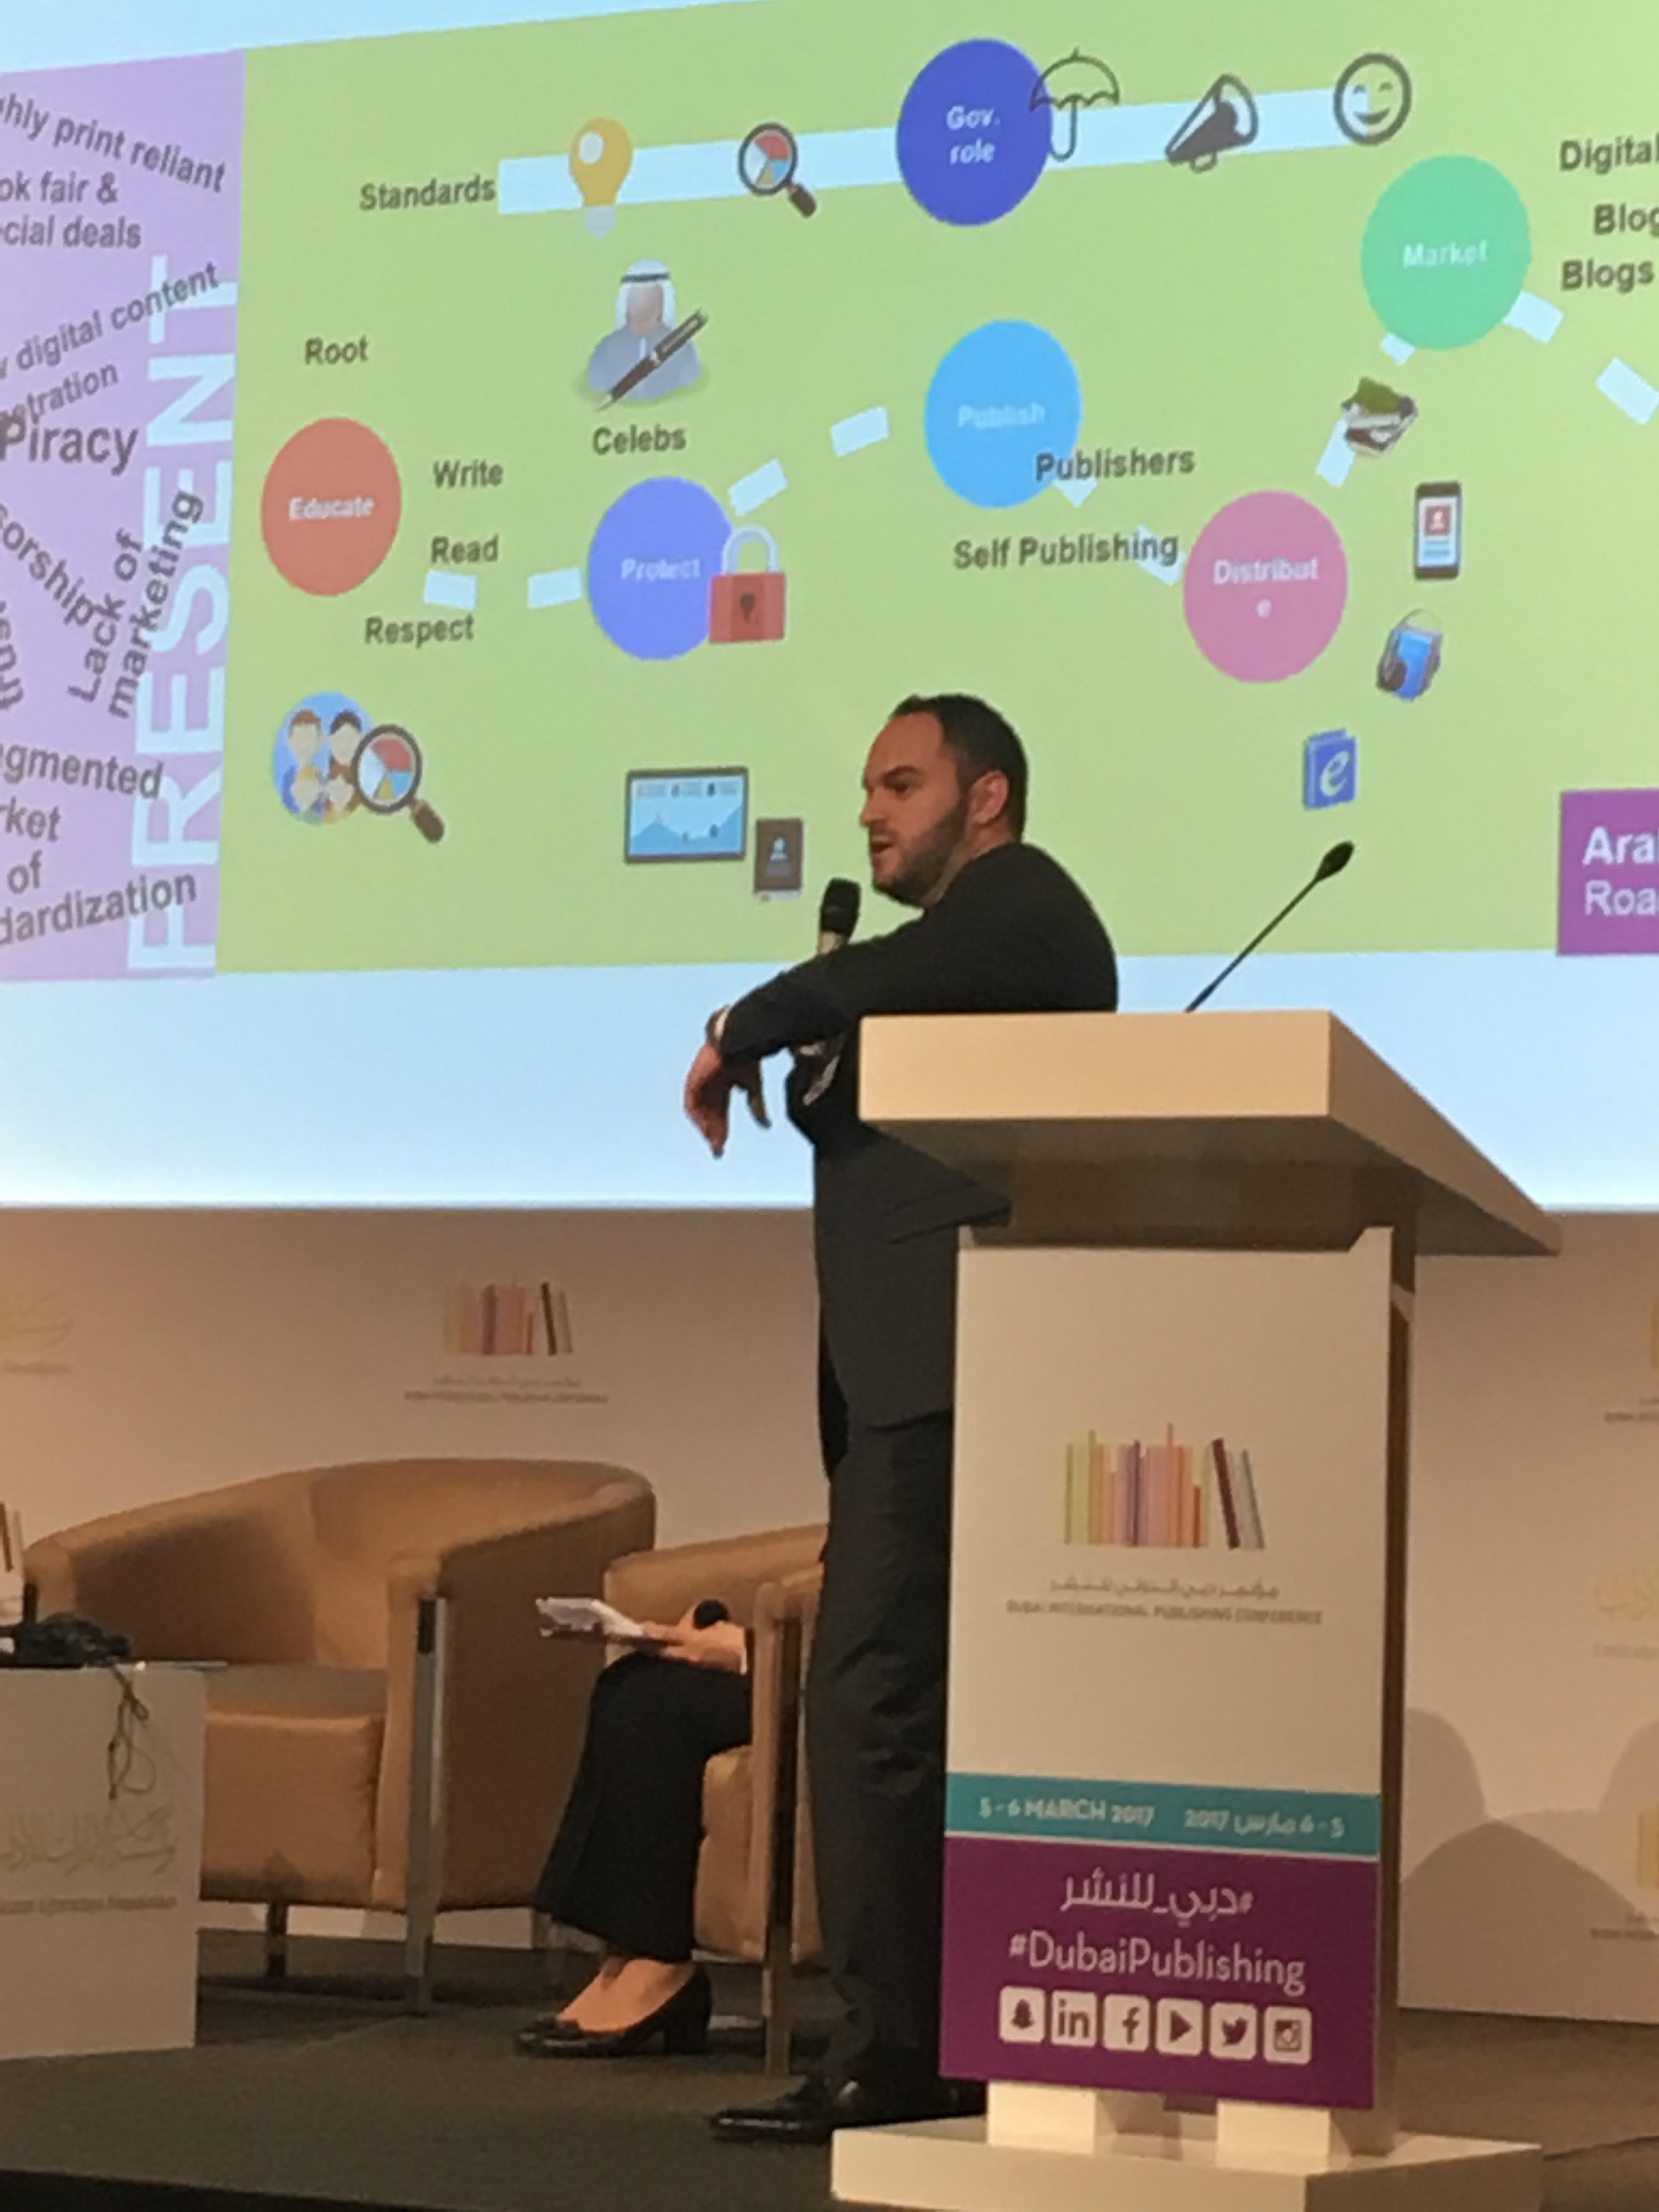 What is the Breakthrough Moment for Arabic Digital Publishing?